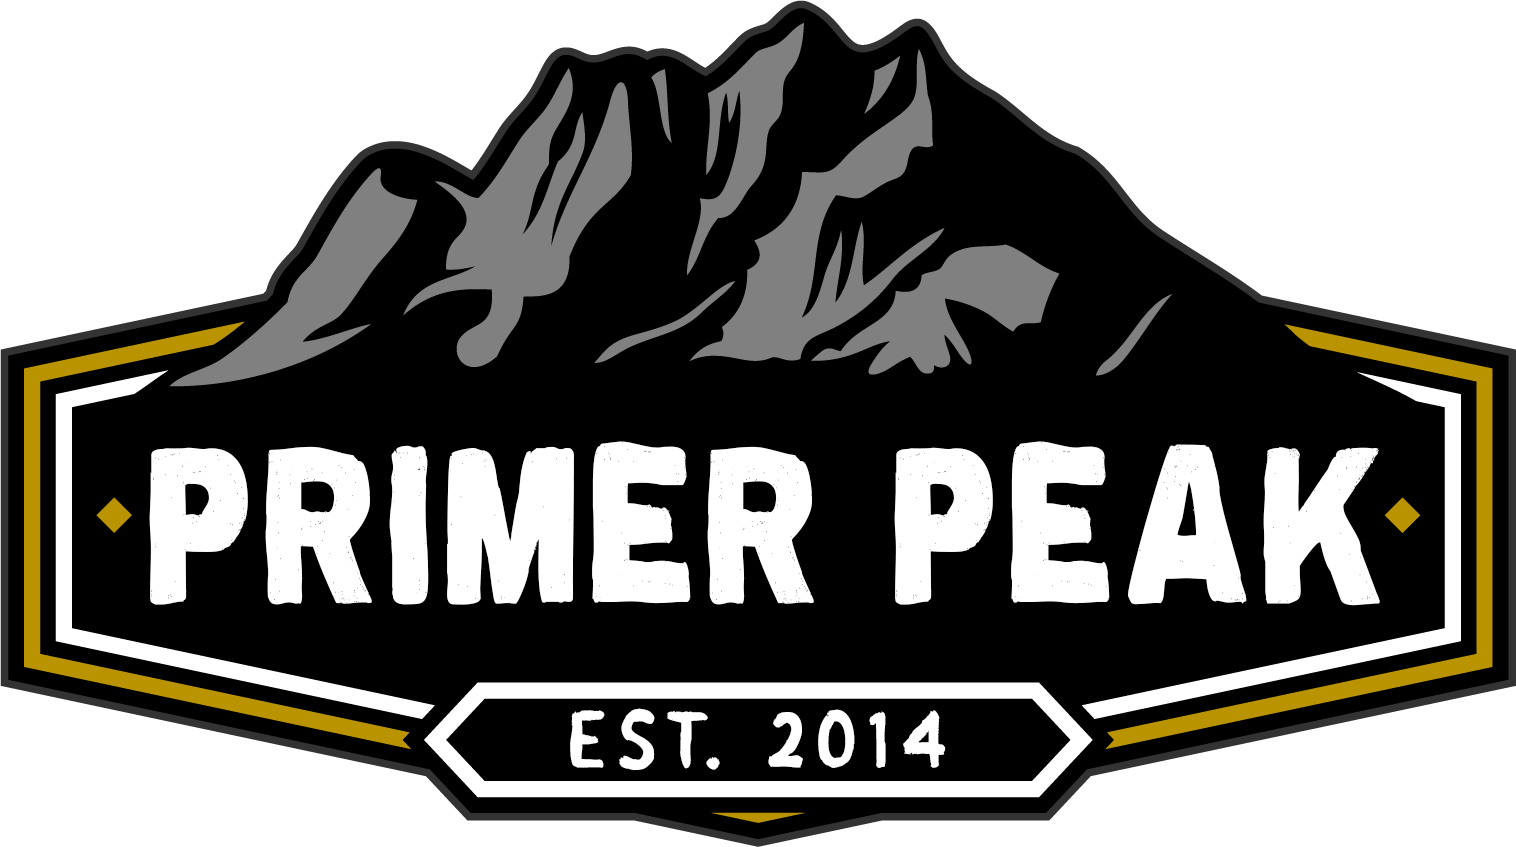 Primer-Peak-Established